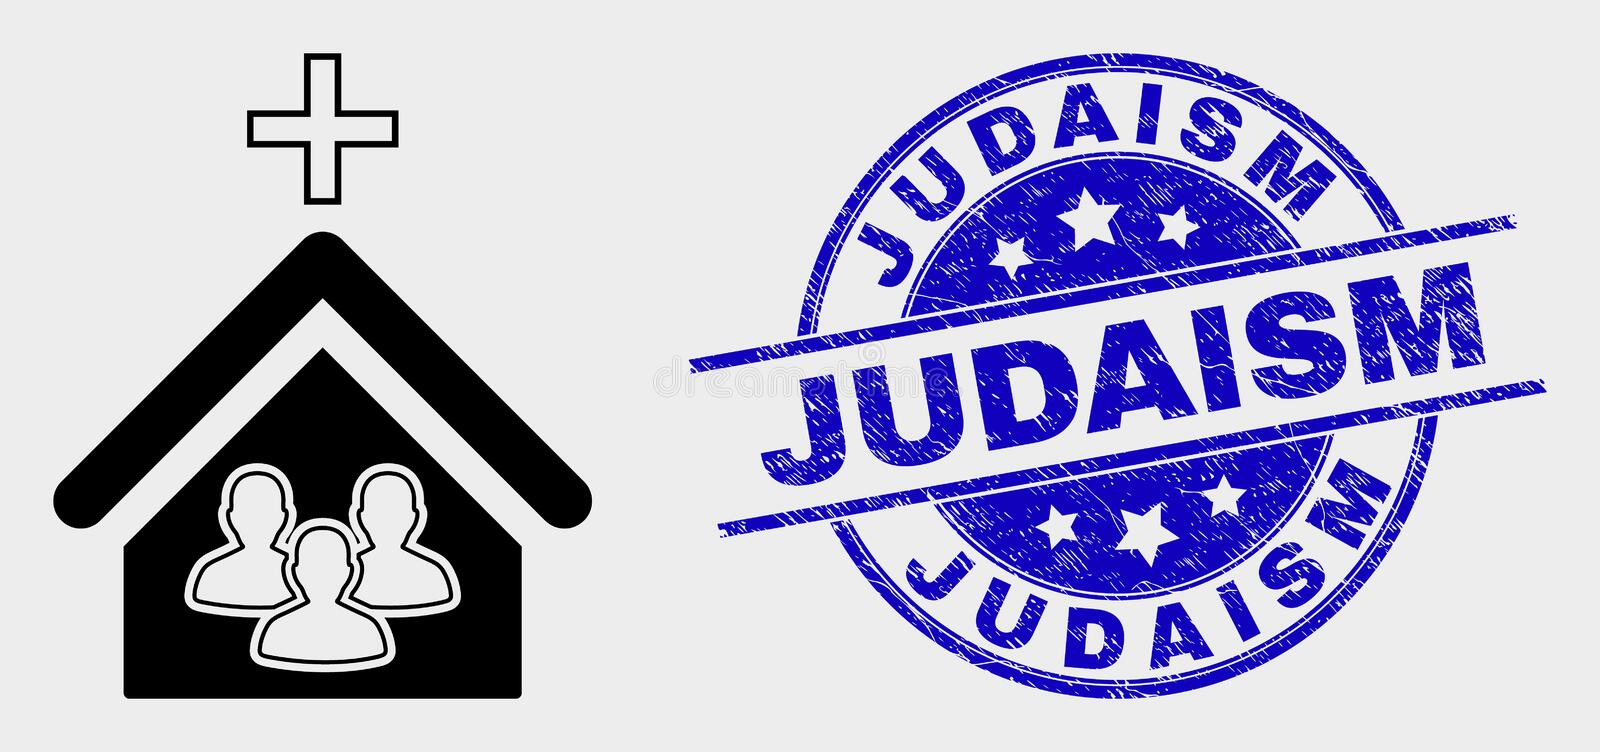 Vector Church People Icon and Distress Judaism Watermark. Vector church people pictogram and Judaism seal stamp. Red rounded grunge seal stamp with Judaism text stock illustration